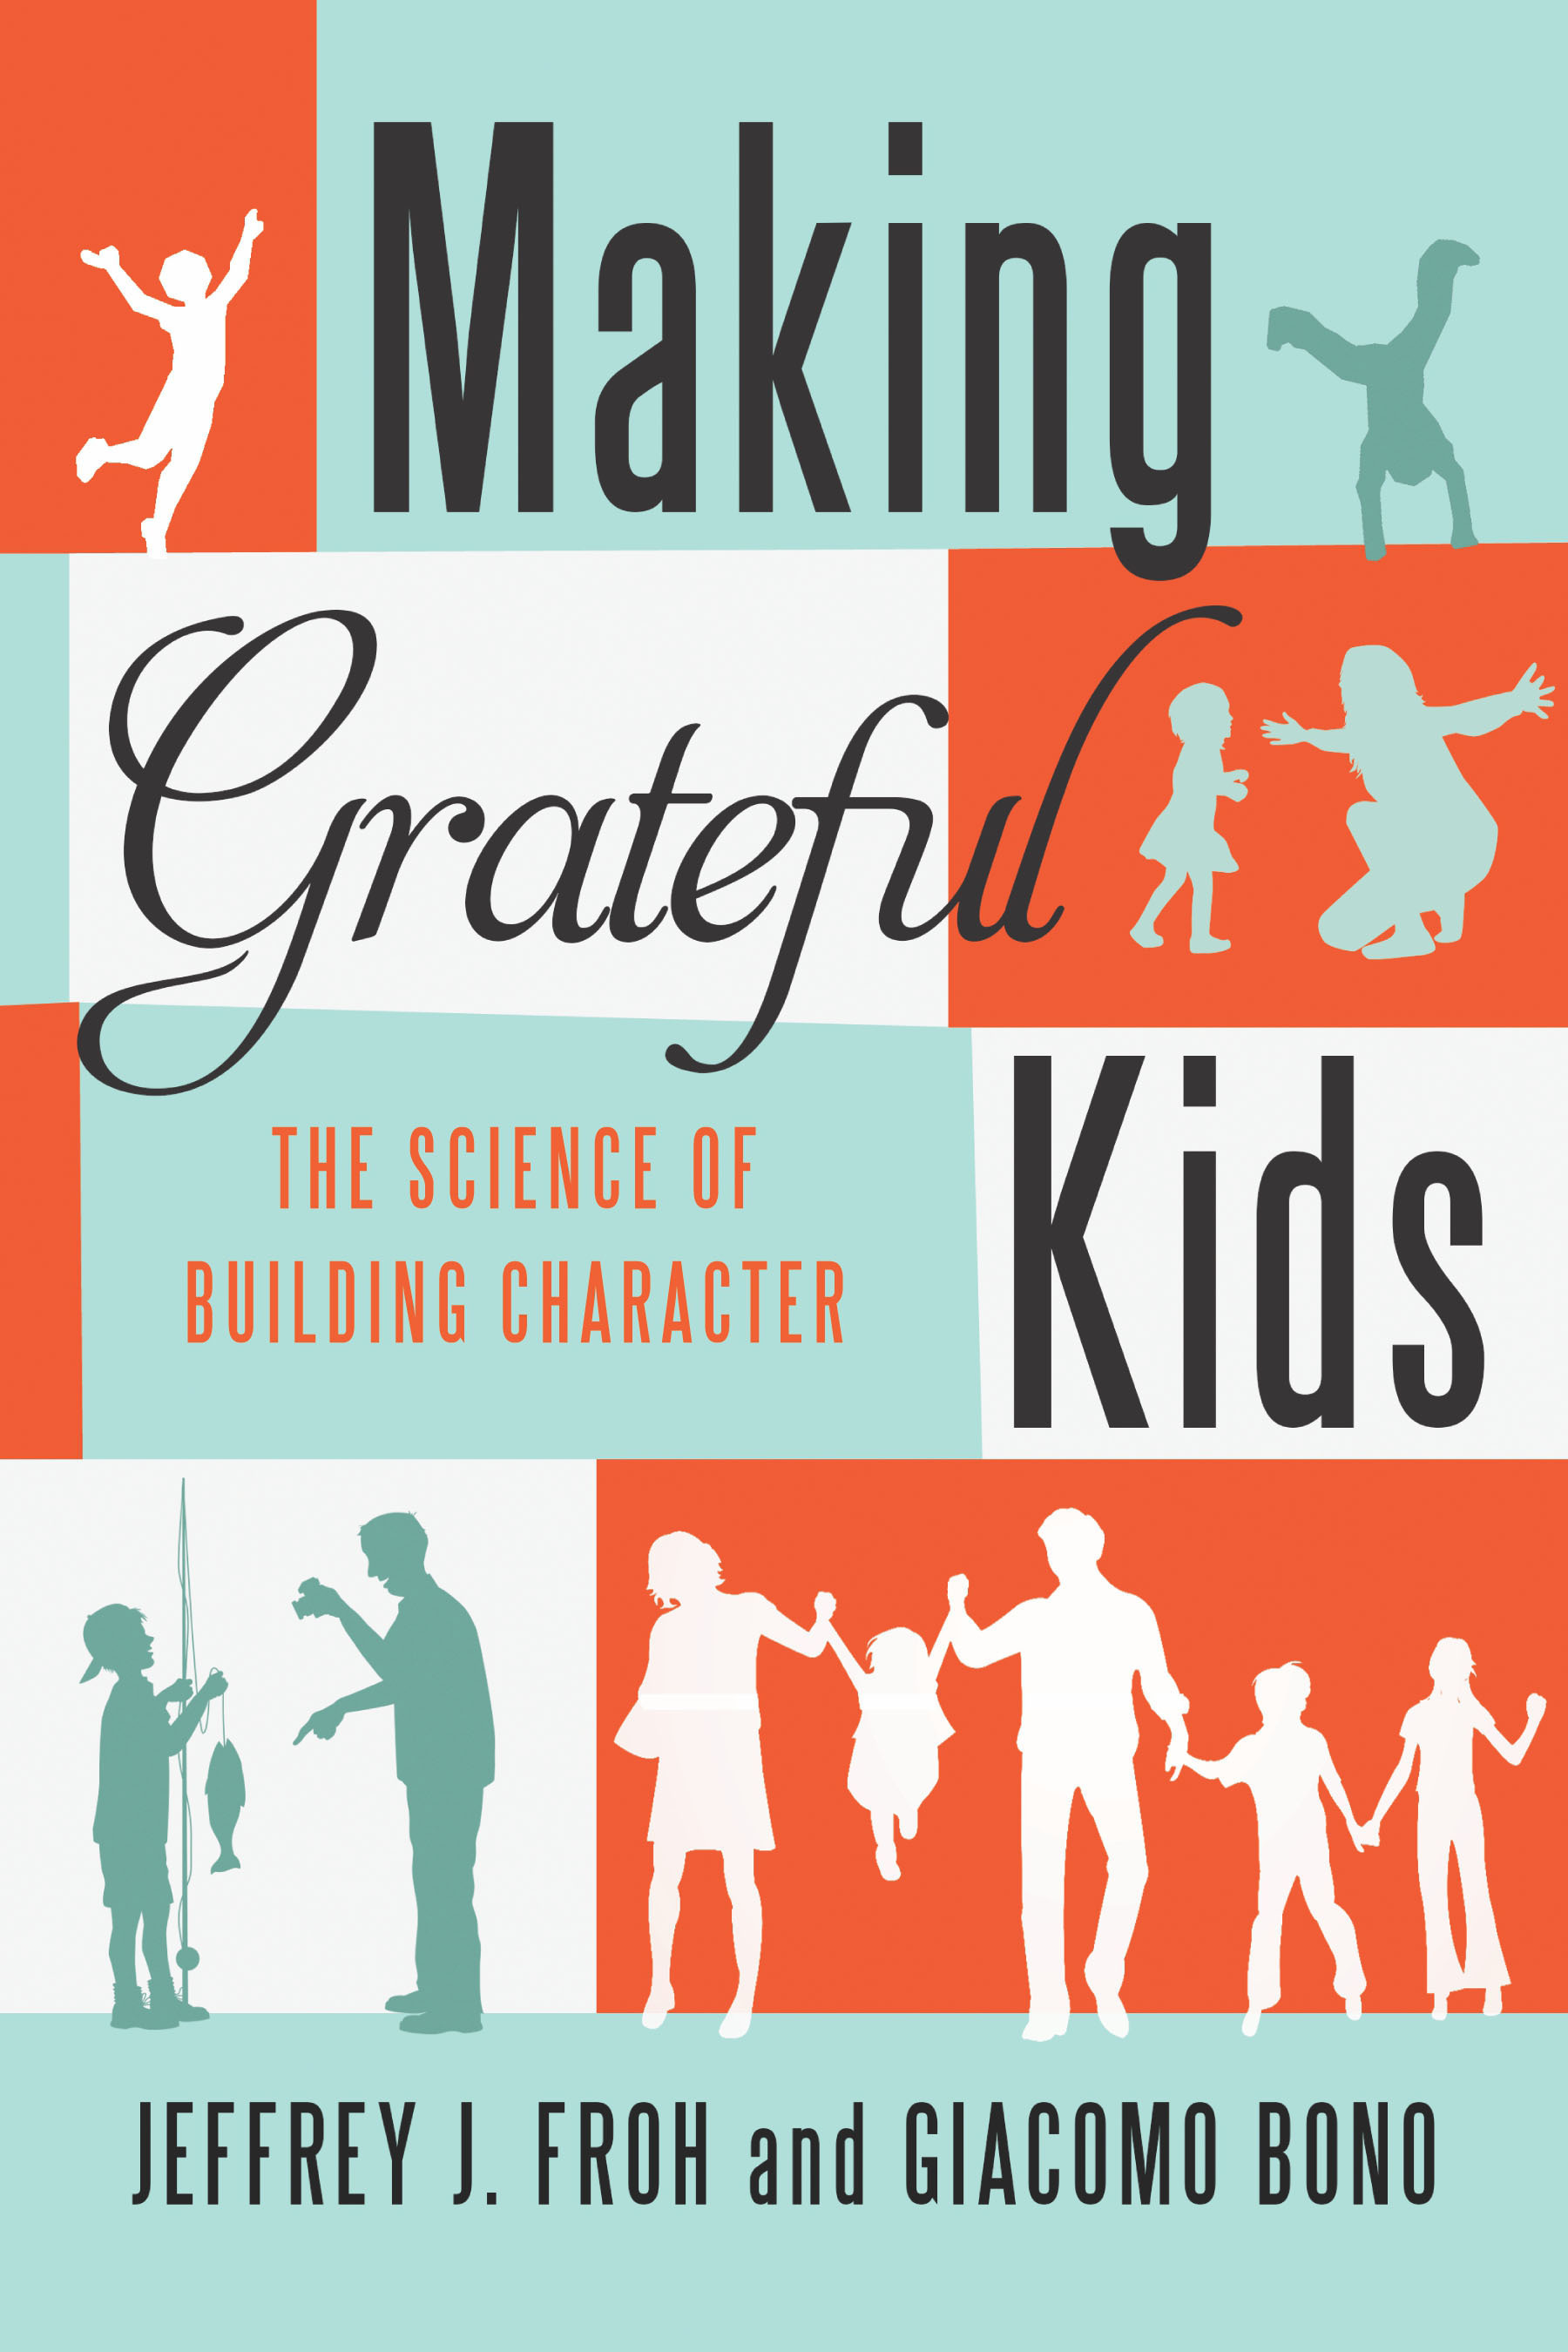 MAKING GRATEFUL KIDS by Jeffrey J. Froh and Giacomo Bono is Available Now